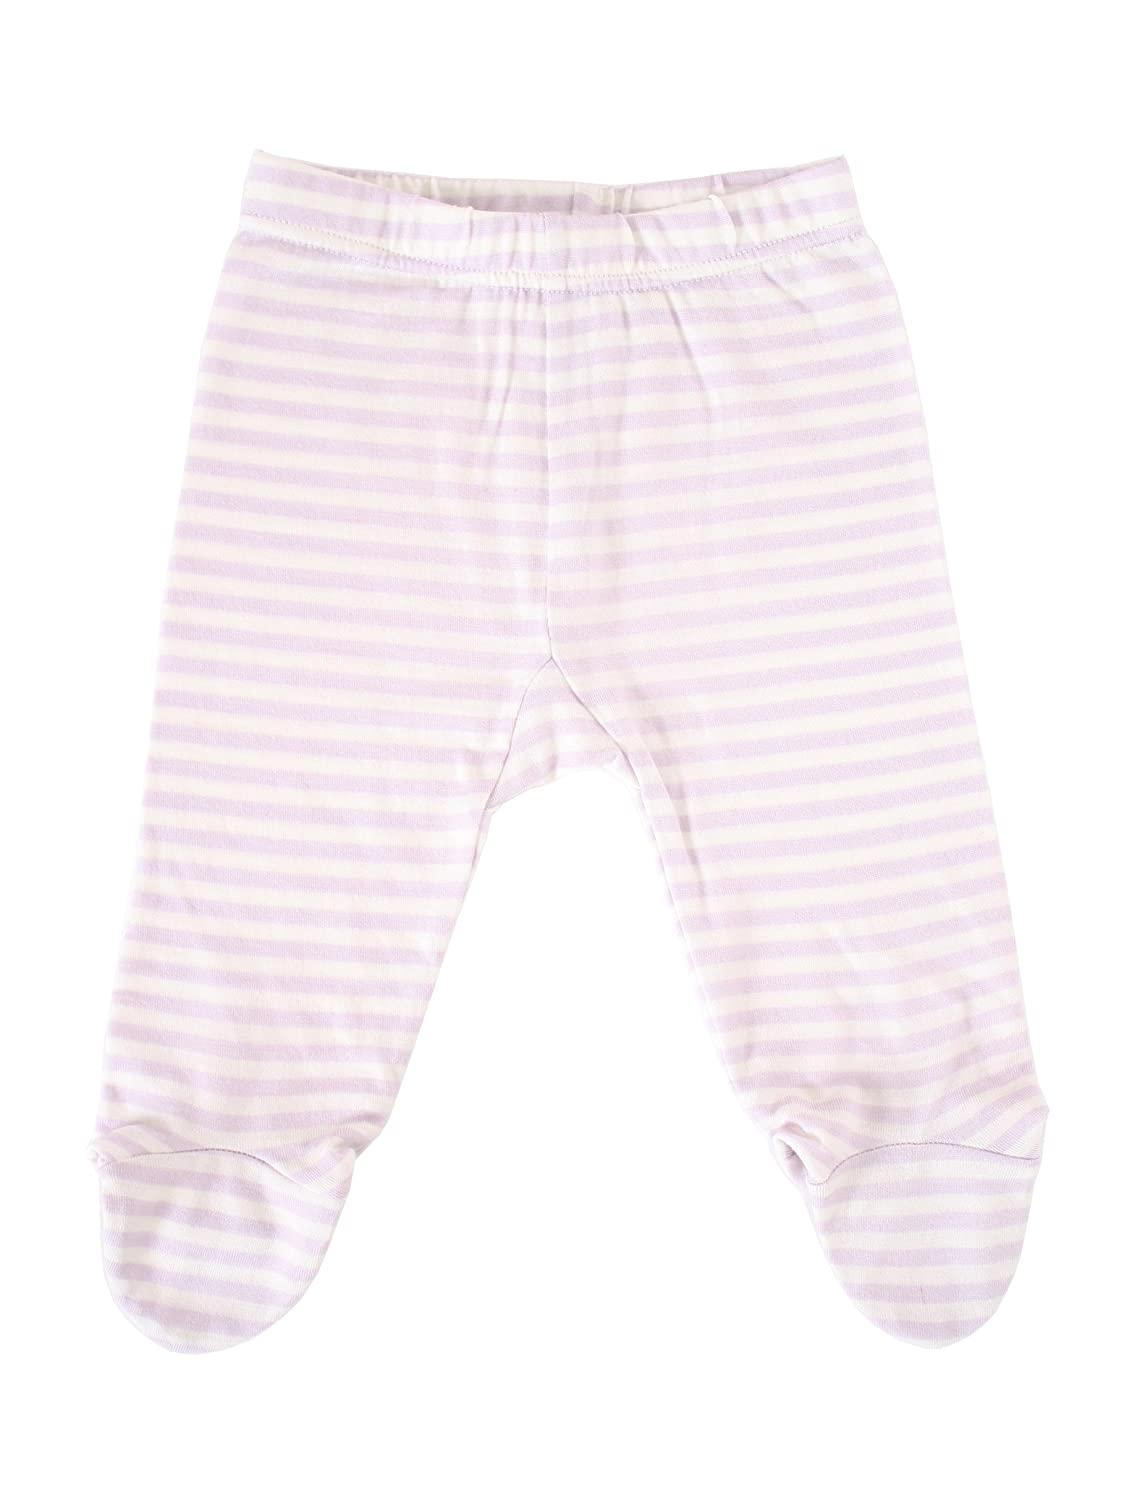 Woolino Baby Footed Romper Pants, 100% Superfine Merino Wool, 3-9 Months FTPANTS-parent